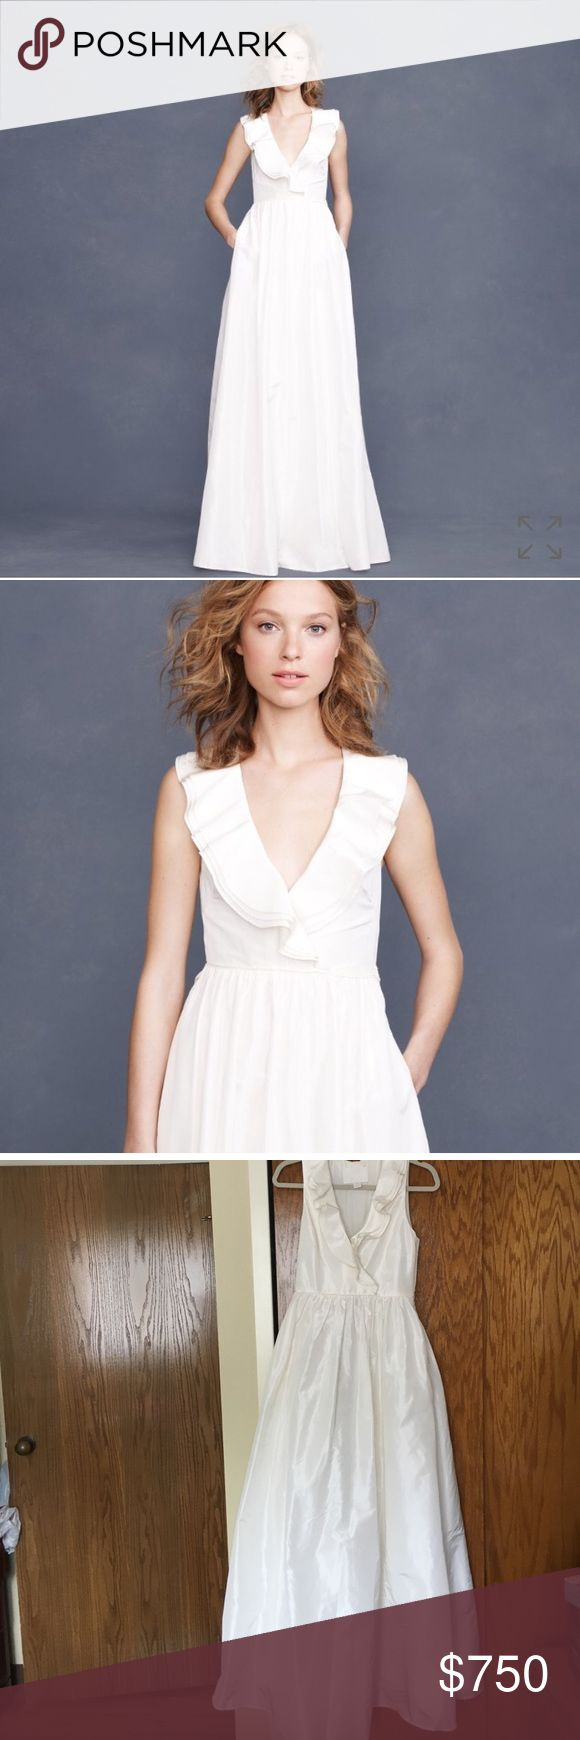 J Crew Kira wedding dress. Size 2 J Crew Kira  wedding dress. Size 2. No longer available online. More of an ivory color. Some fraying of lining  shown in picture. Will need to be dry cleaned before use. Bottom of dress is a bit dirty. More info from J Crew site is available in comments section . Any questions please ask.  More than happy to help. I cannot personally fit so no modeling available. J. Crew Dresses Wedding